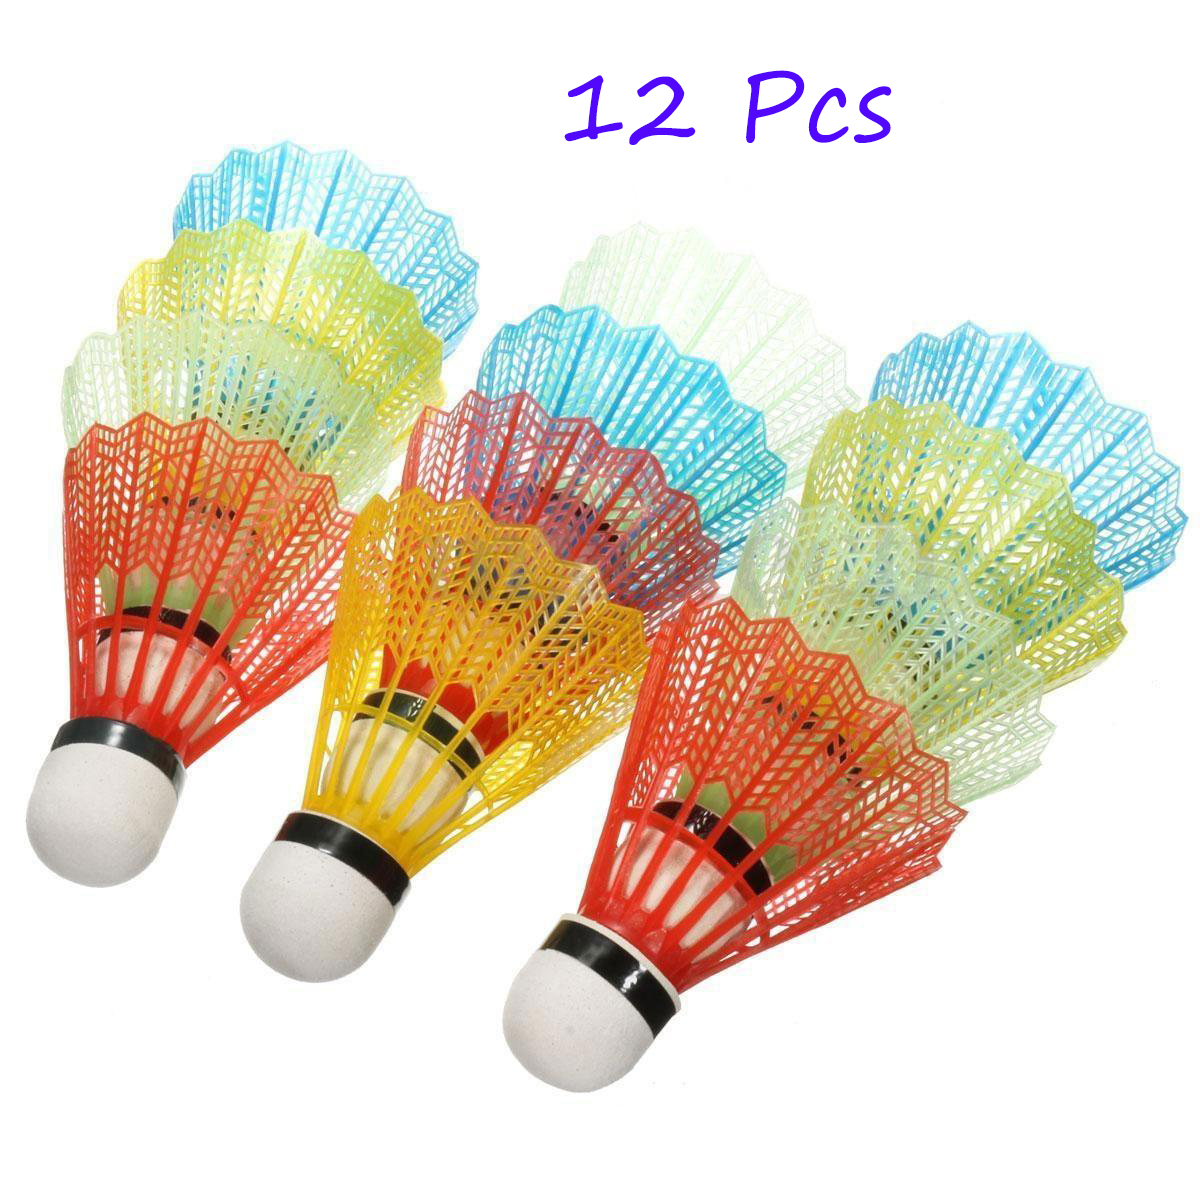 12pcs Colorful Badminton Balls Shuttlecocks Products Sport Training Train Outdoor Supplies Badminton Accessories